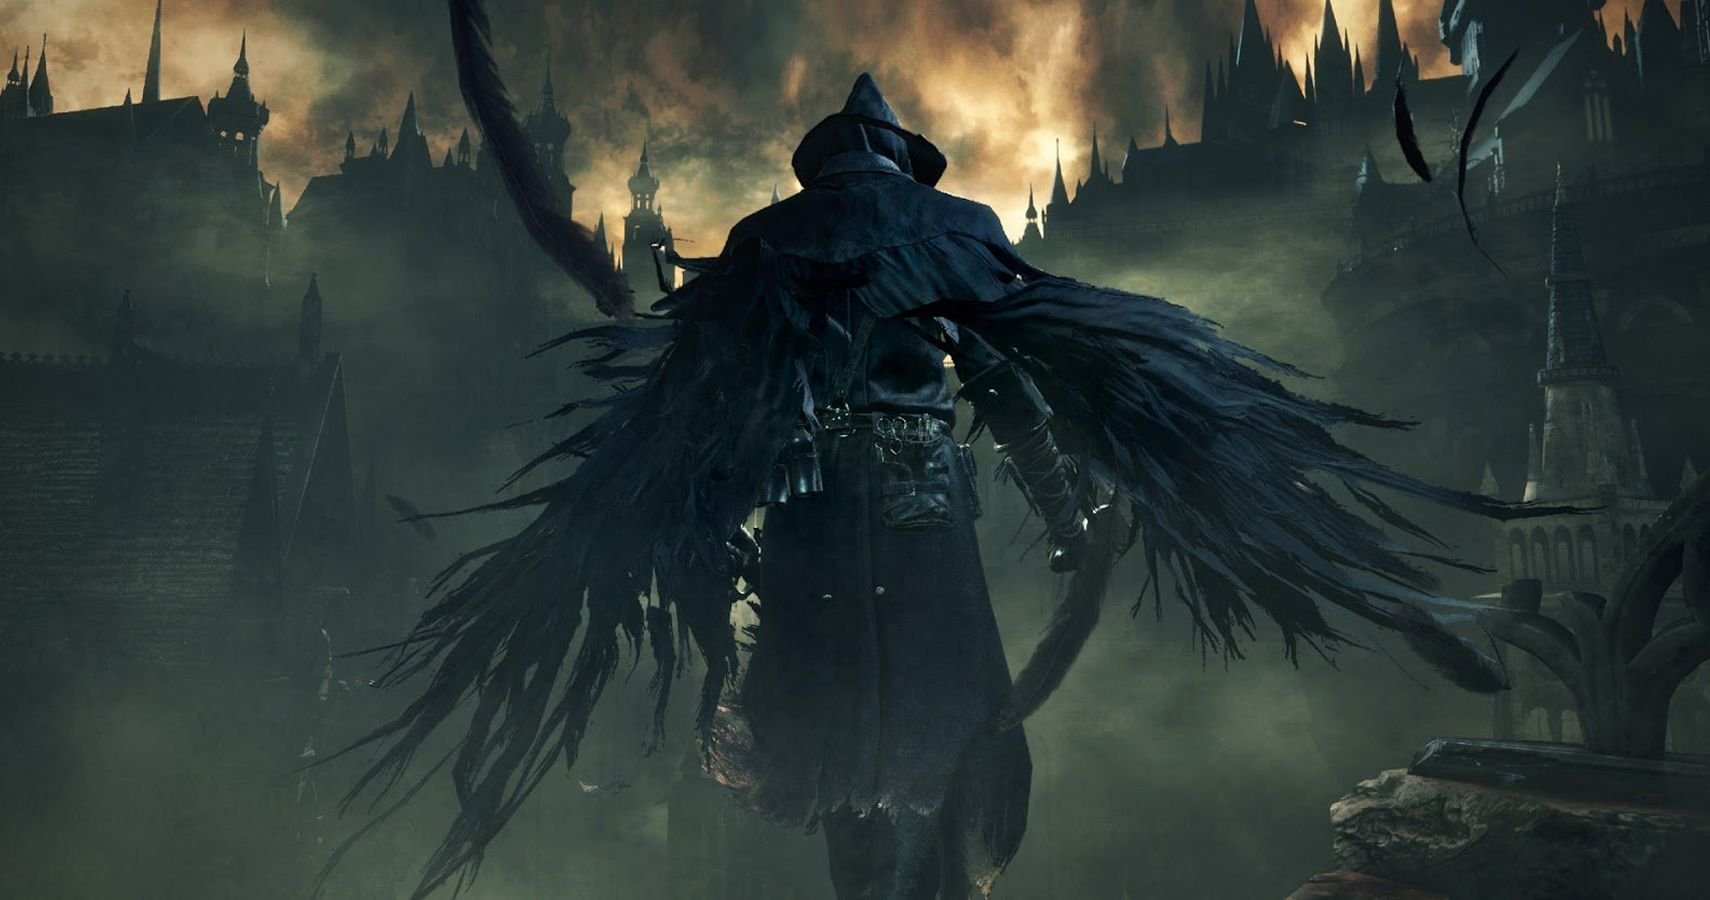 Bloodborne: Eileen The Crow's Quest And Why The Blade Of Mercy Is So